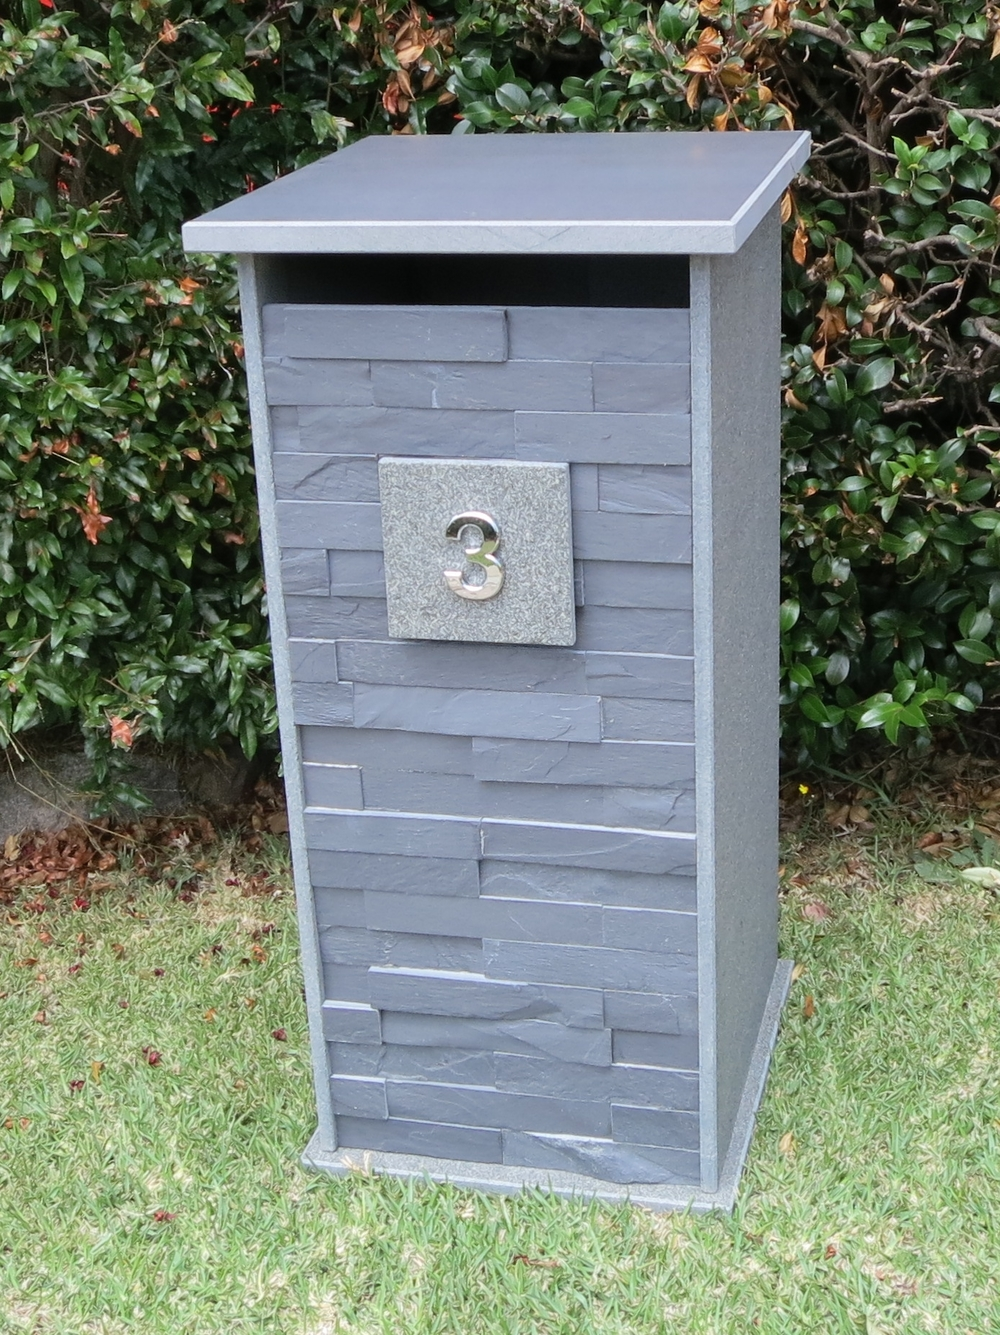 104. Bluestone letterbox customized letterbox for extra large envelops. One pc unit pick up from store only. 380x325mm floor size inside. Outside dimentions 430x410x850mm. $900